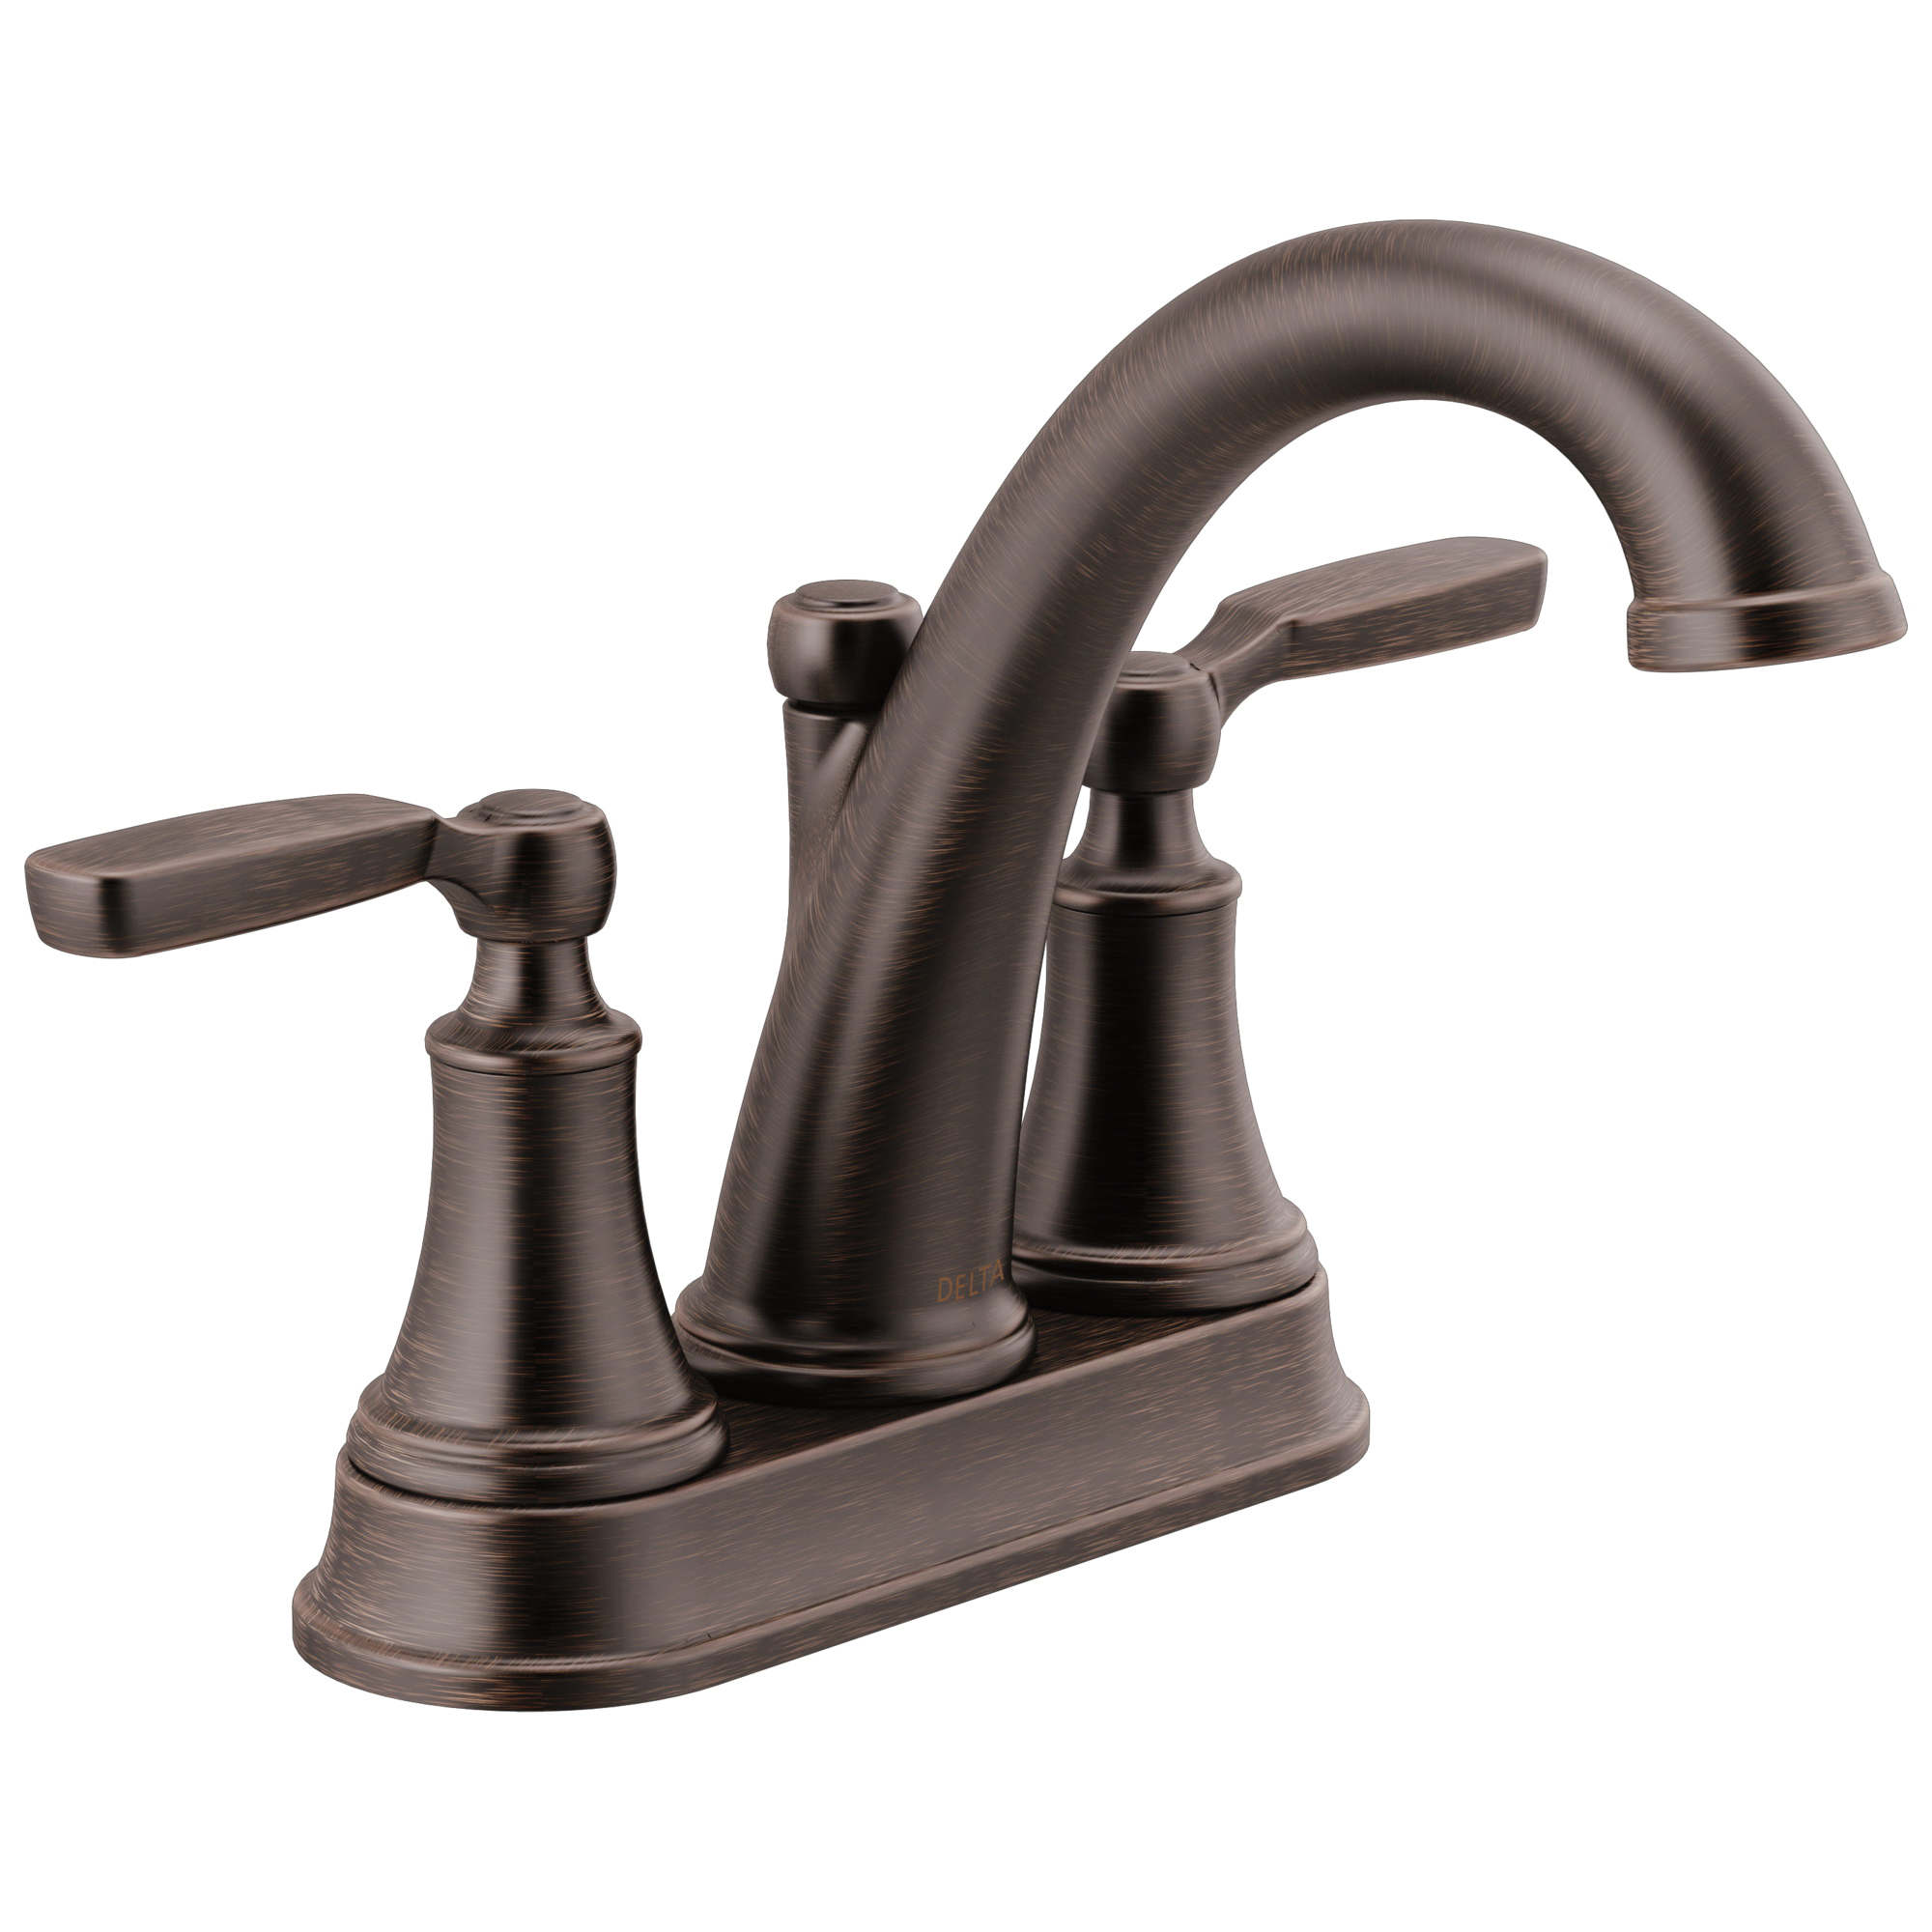 DELTA® 2532LF-RBTP Bathroom Faucet, Woodhurst™, Venetian Bronze, 2 Handles, 50/50 Pop-Up Drain, 1.2 gpm